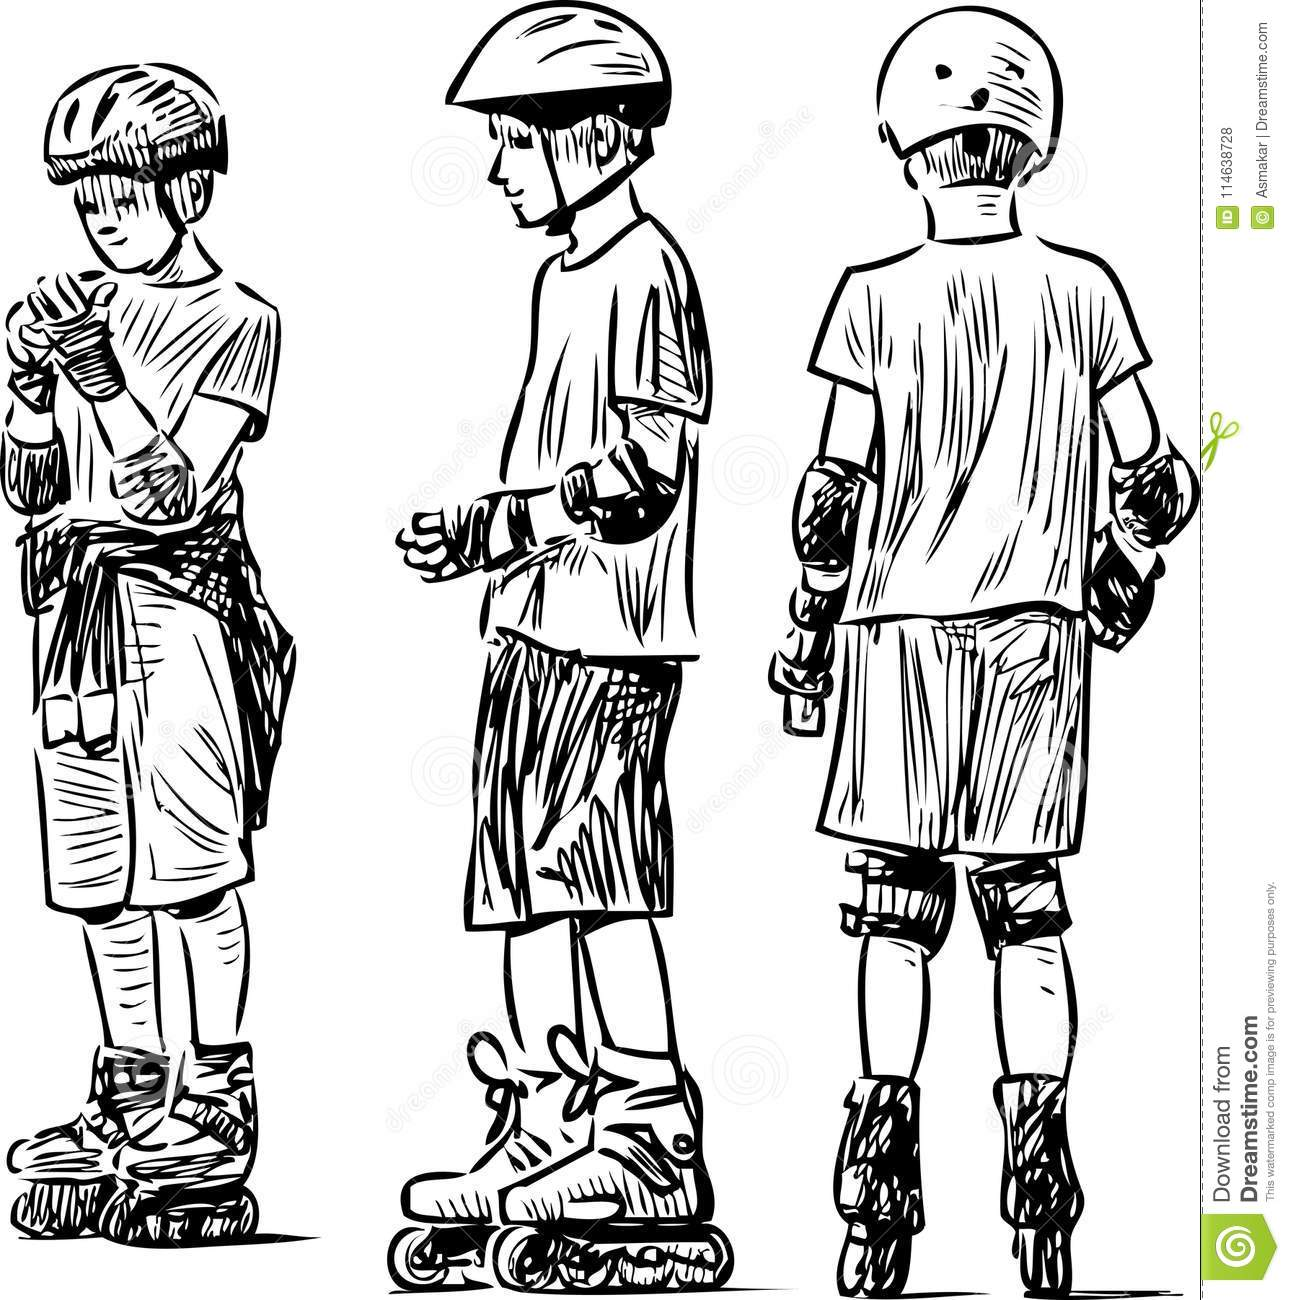 Sketch of the teen boys on the rollers